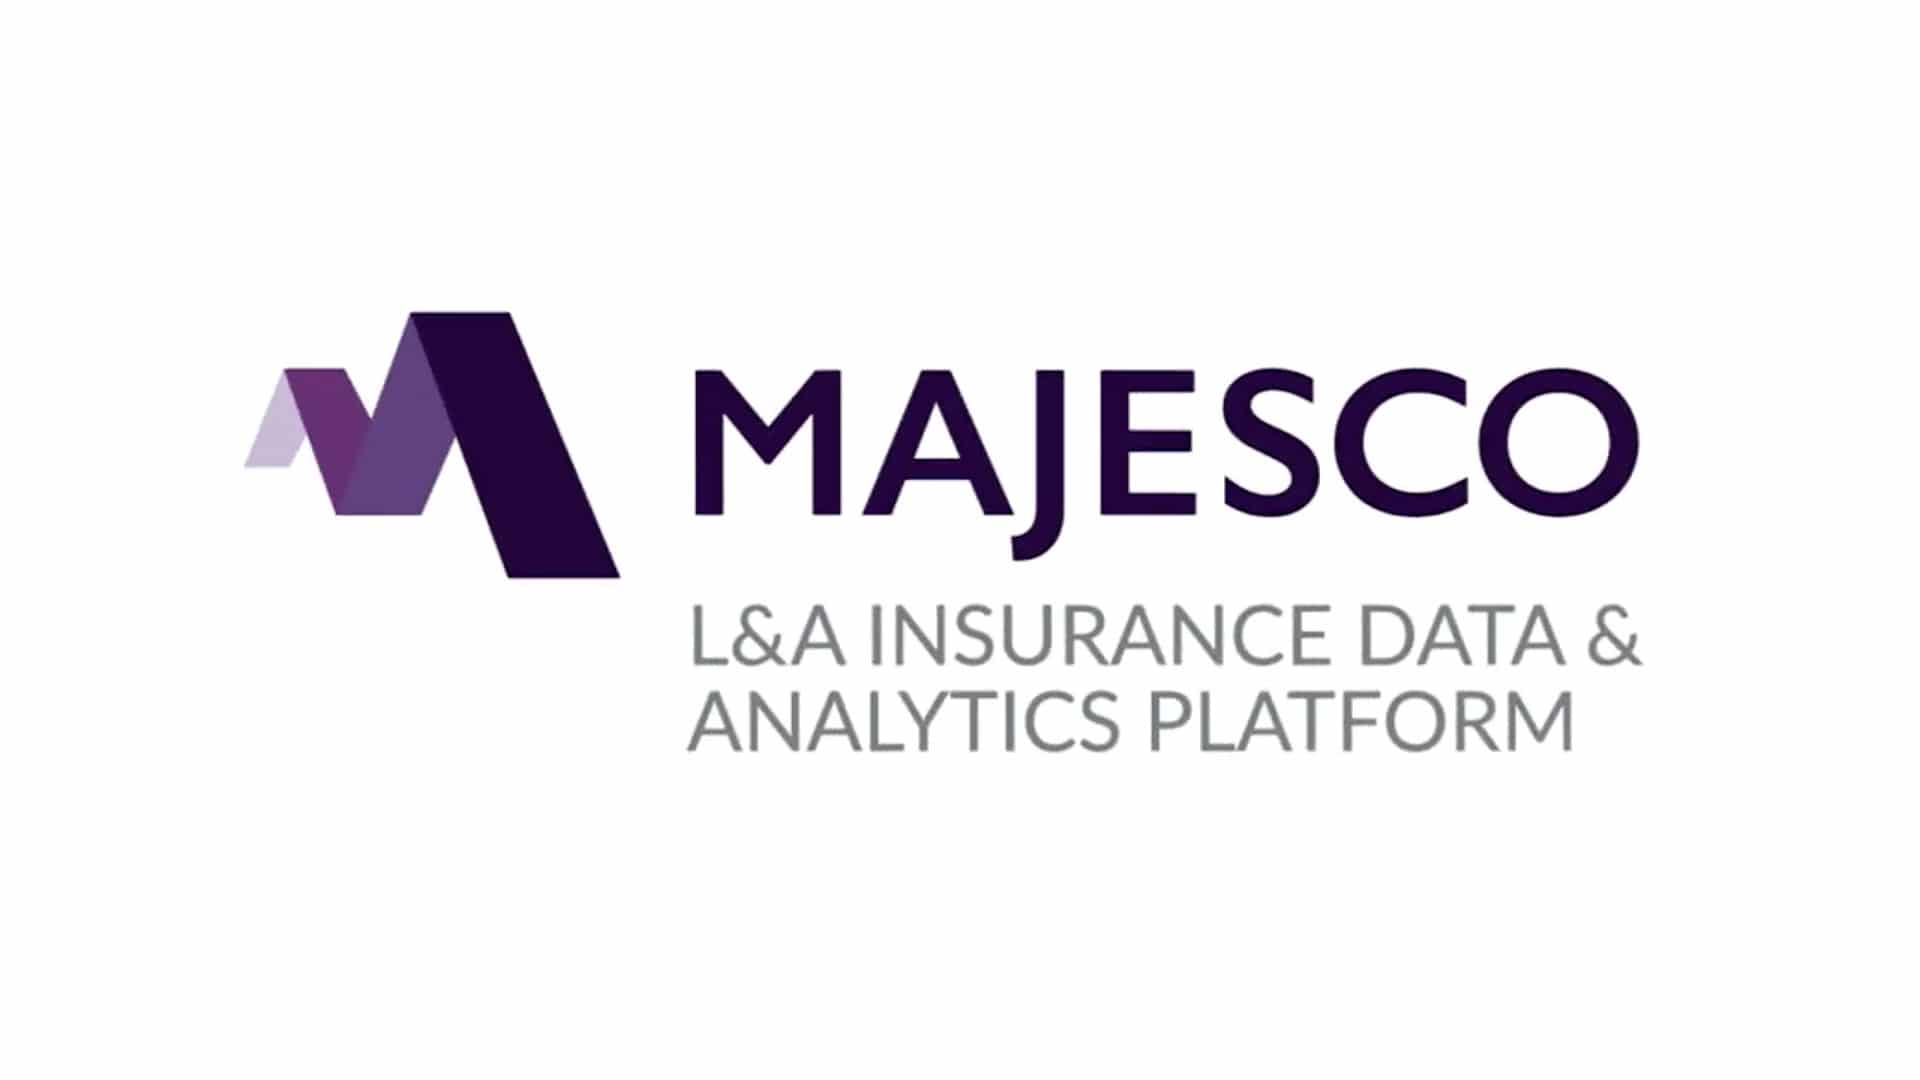 Introducing Majesco L&A Insurance Data & Analytics Platform